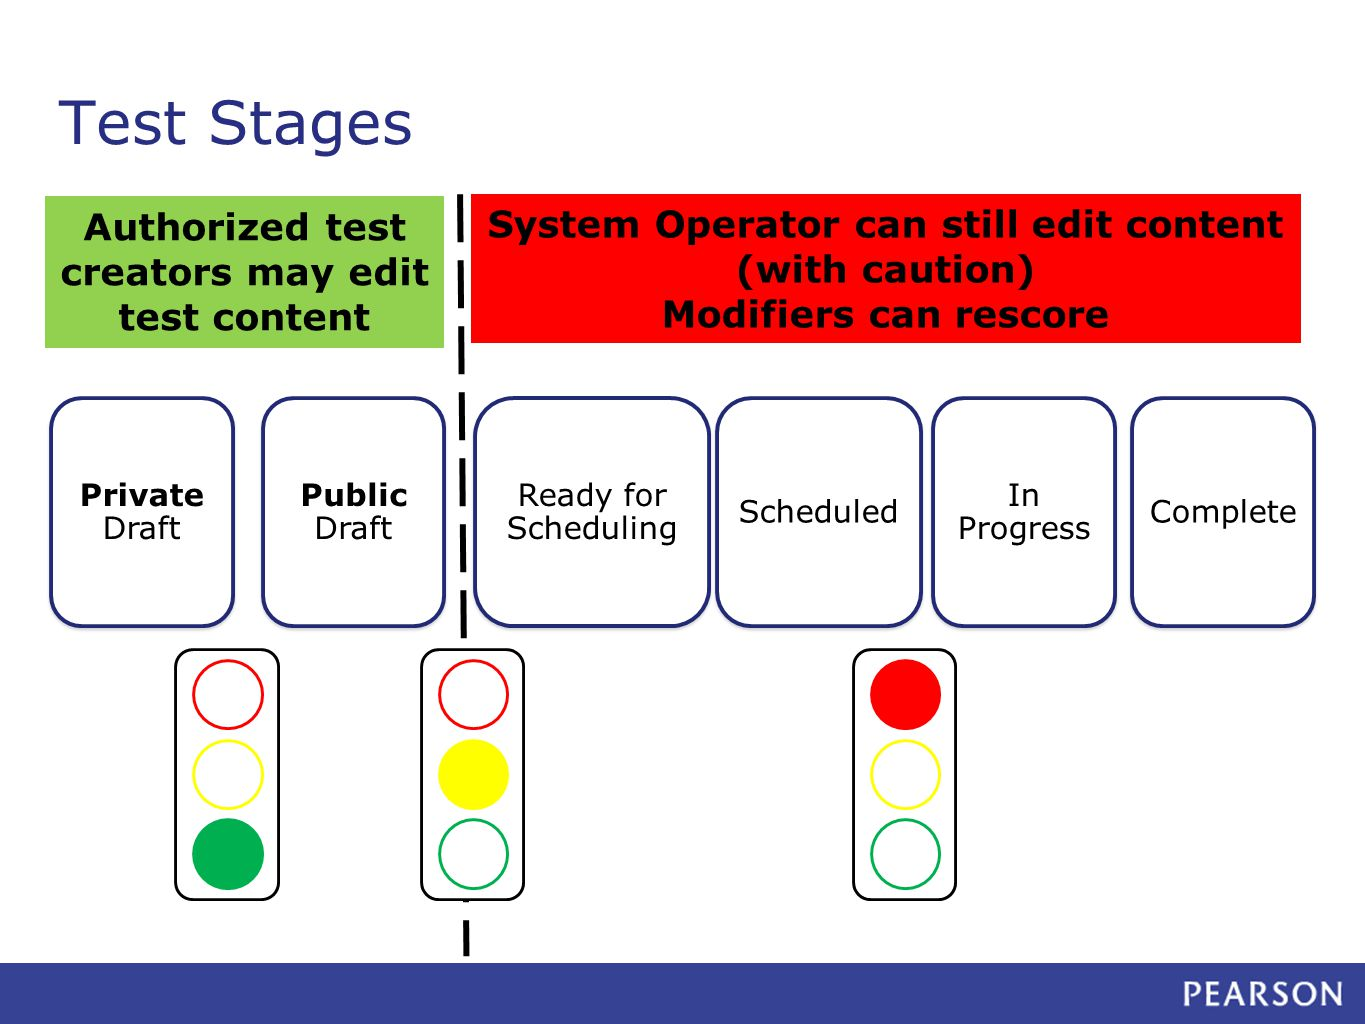 System Operator can still edit content (with caution) Modifiers can rescore Private Draft Public Draft Ready for Scheduling Scheduled In Progress Complete Authorized test creators may edit test content Test Stages